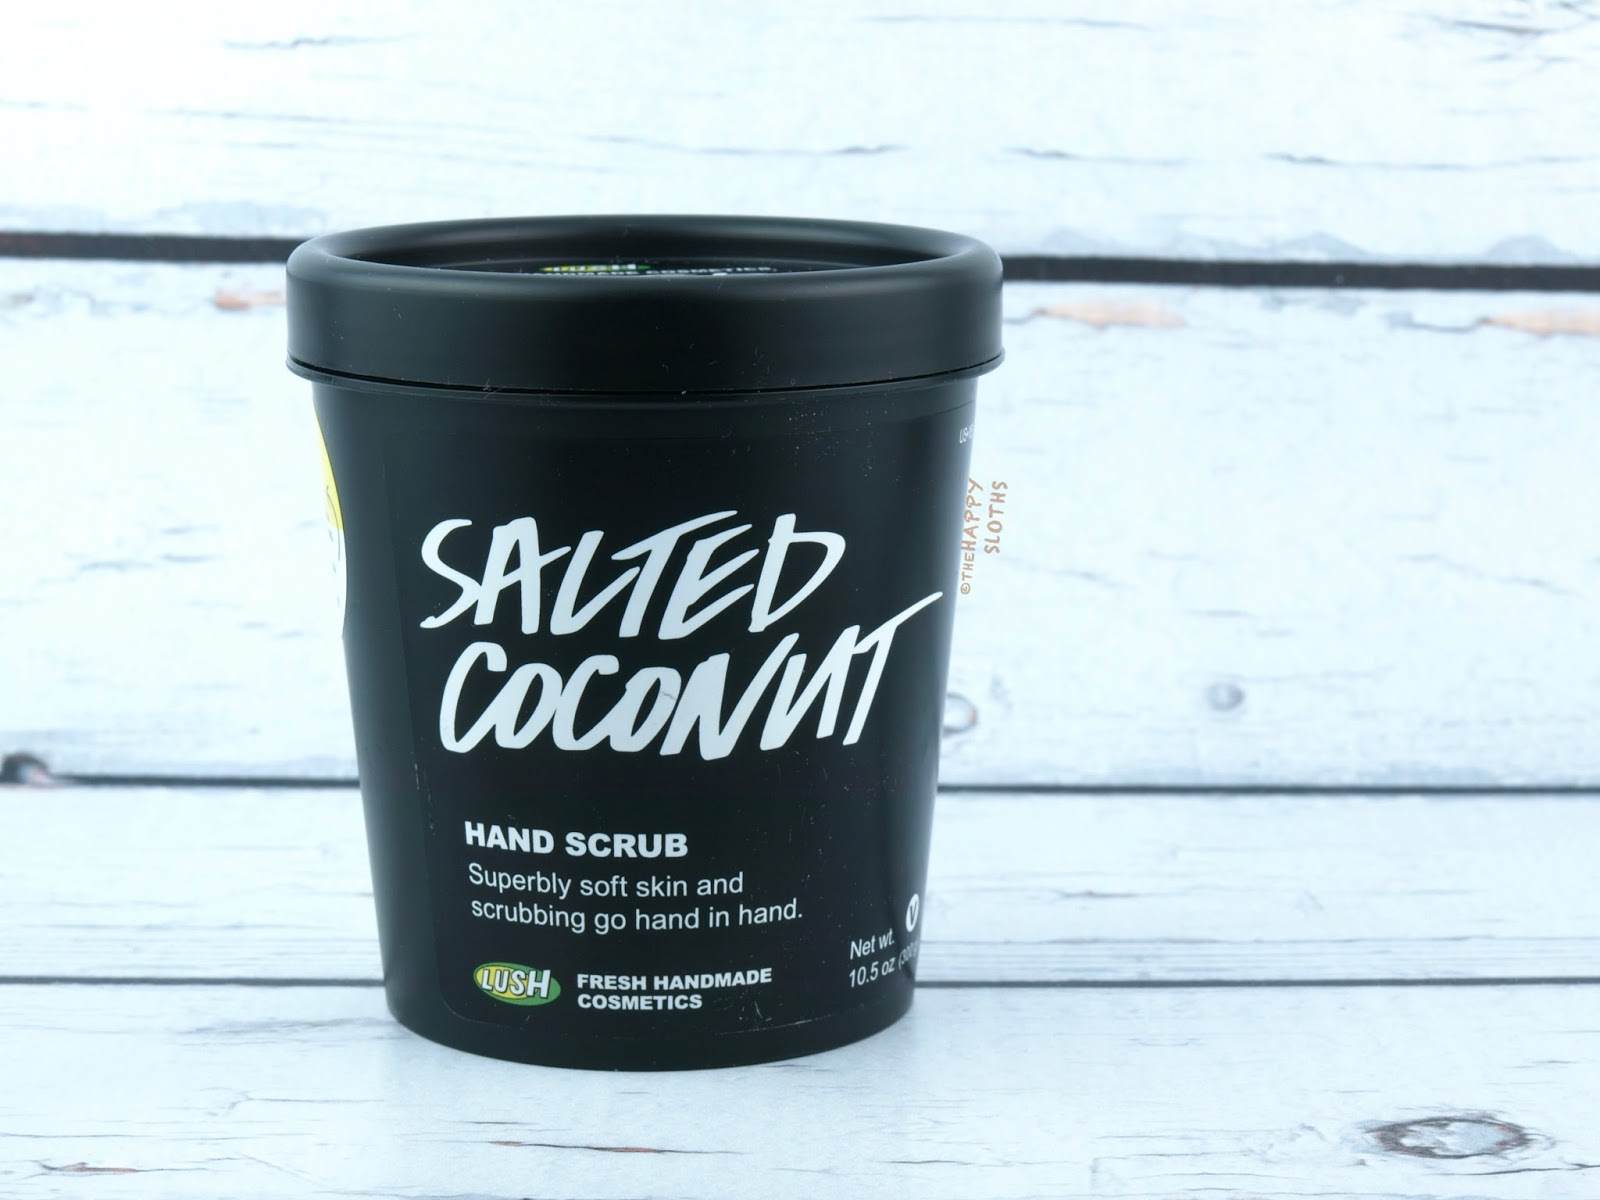 Lush Salted Coconut Hand Scrub: Review